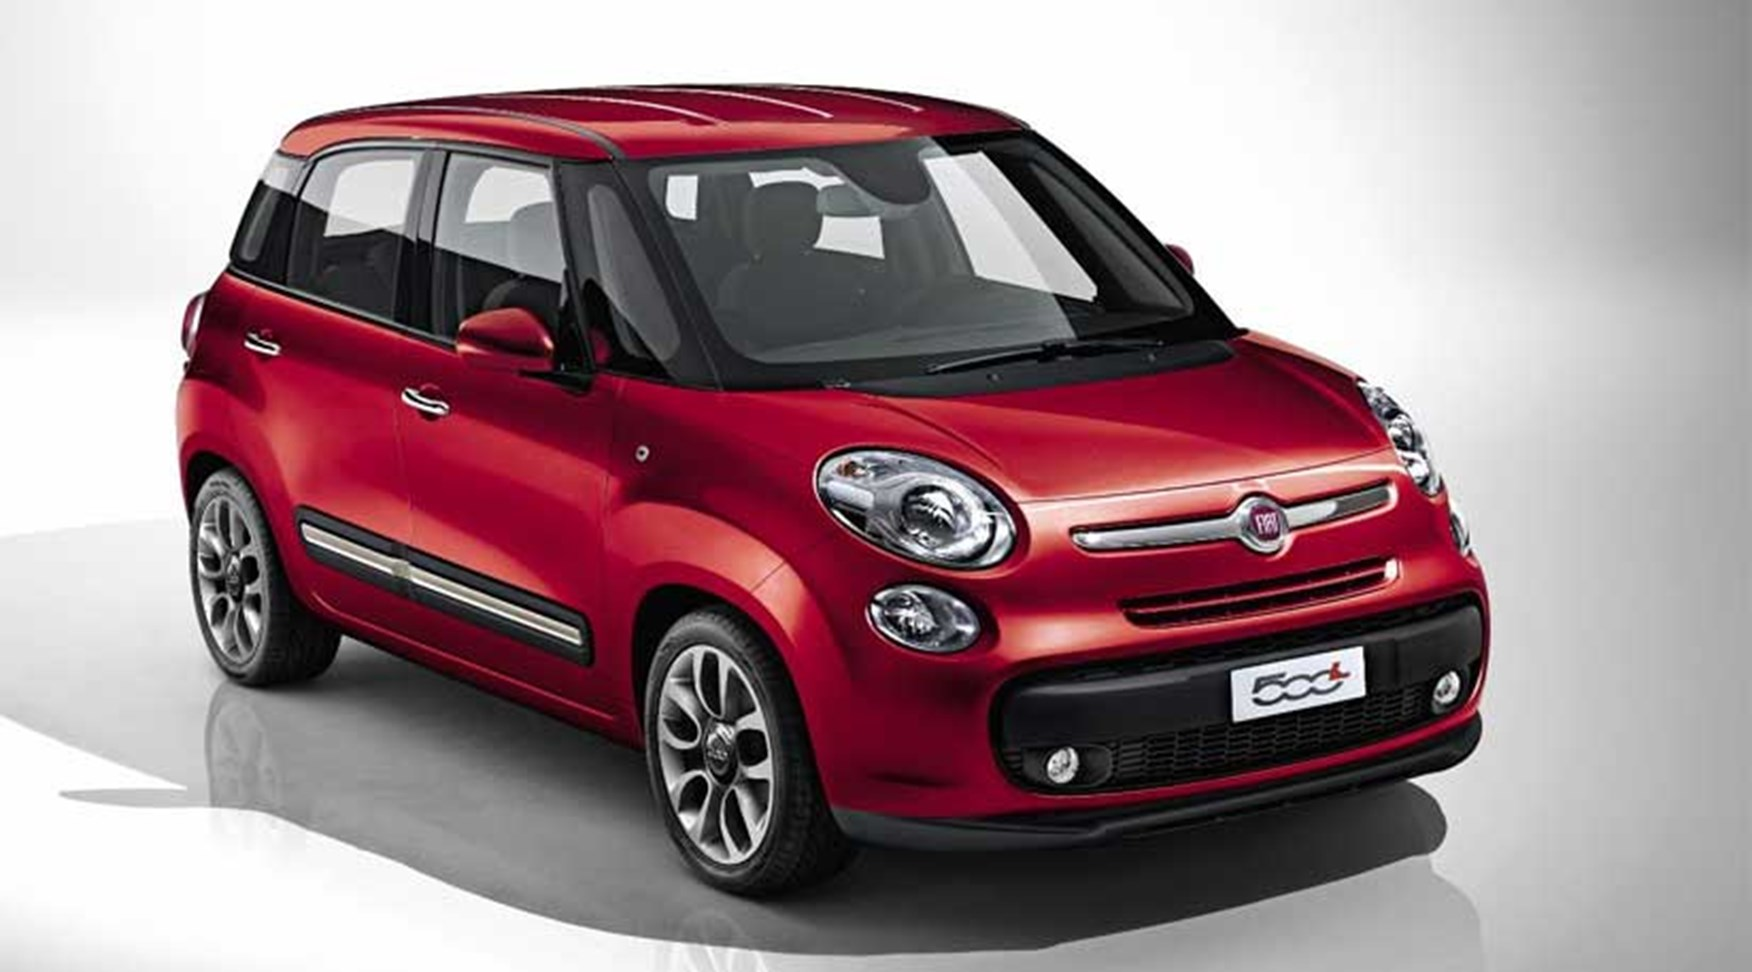 fiat s 500 will form a theme for future fiat models the fiat panda ...